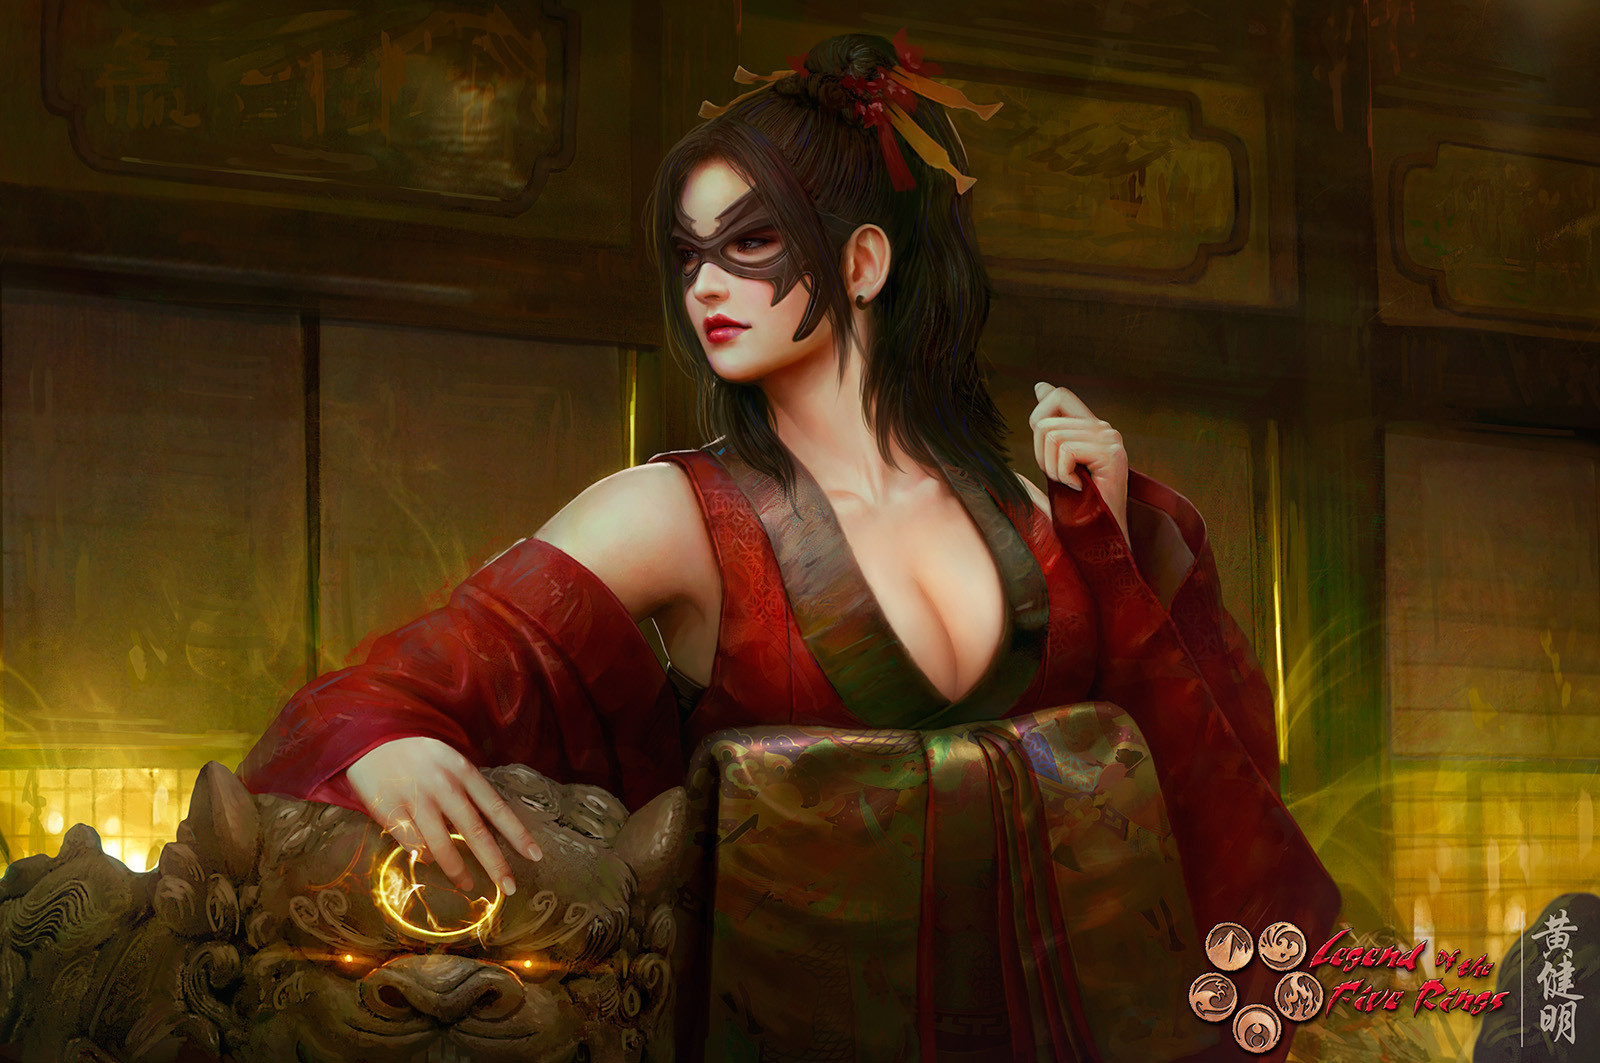 General 1600x1063 artwork women Asian Japan geisha mask costumes culture painting digital art Mario Wibisono cleavage fan art samurai warrior fantasy art video games Legend of the Five Rings